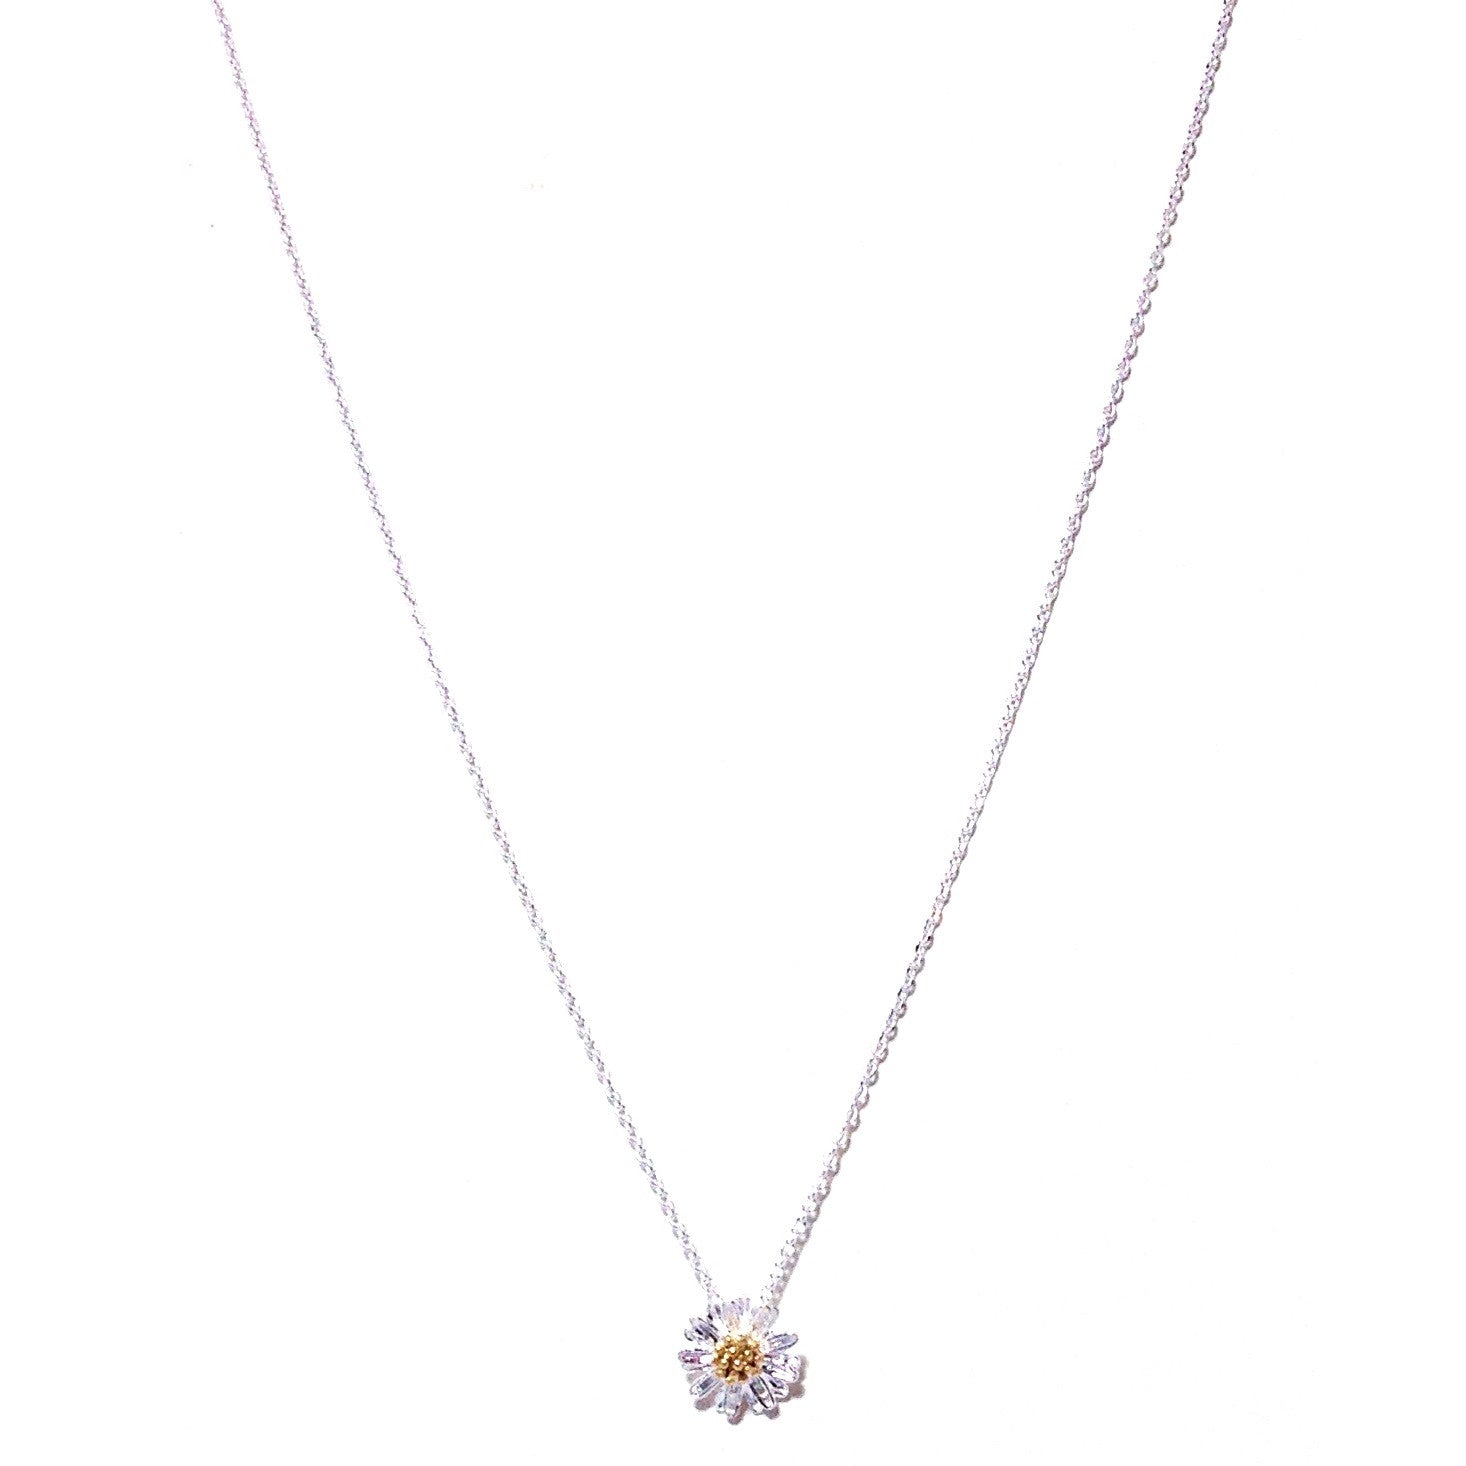 Tiny Daisy Necklace, $22 | Silver and Gold Plate | Light Years Jewelry